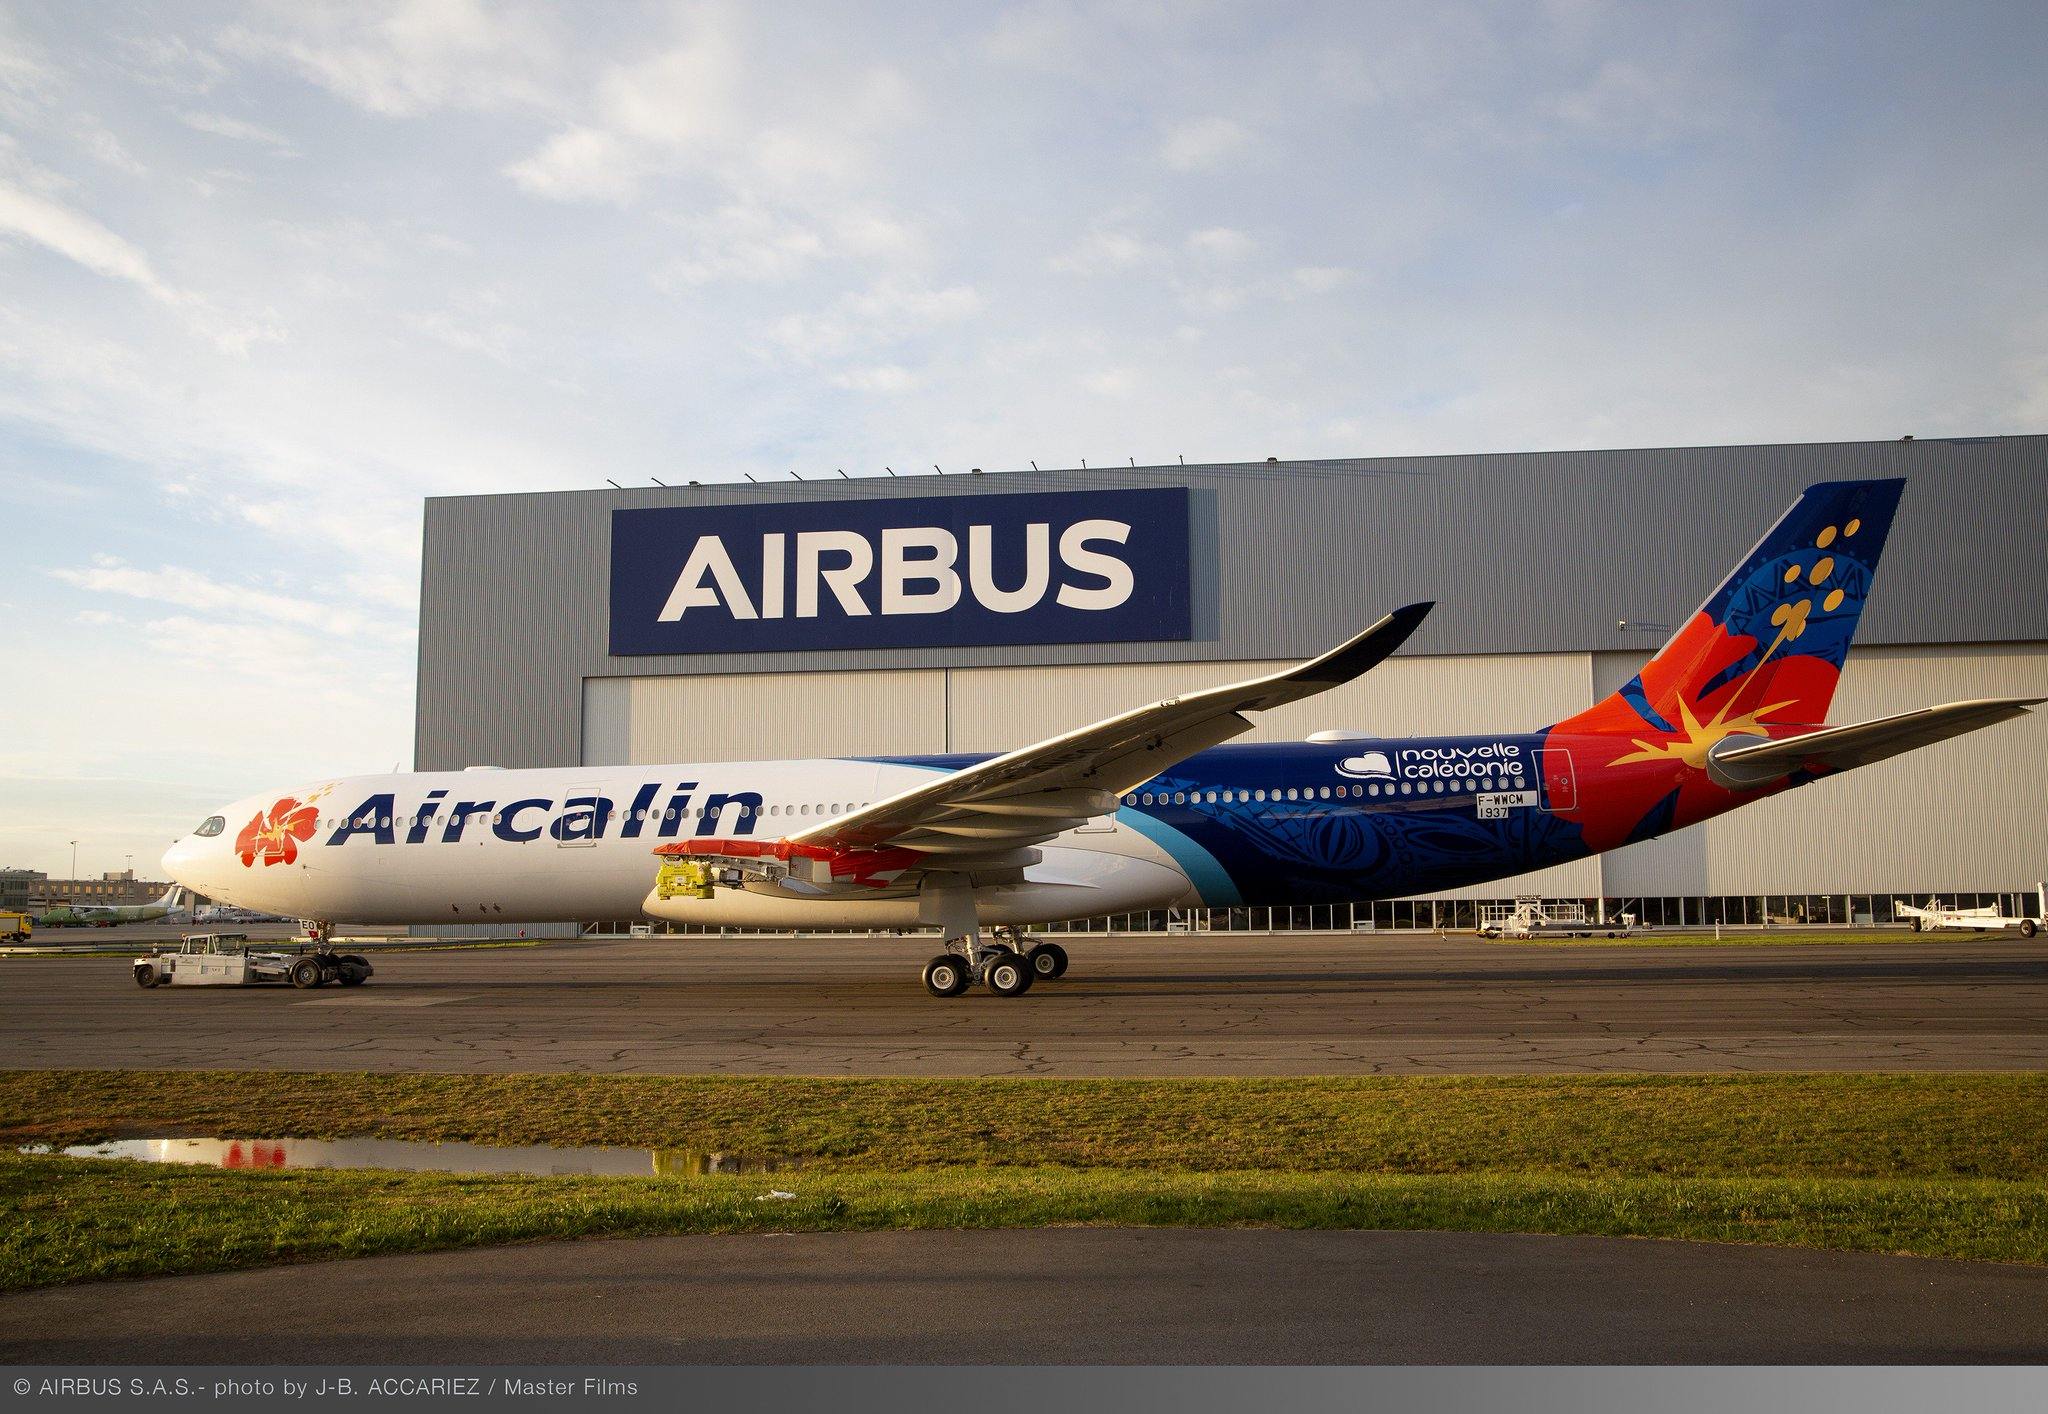 Photo by Airbus